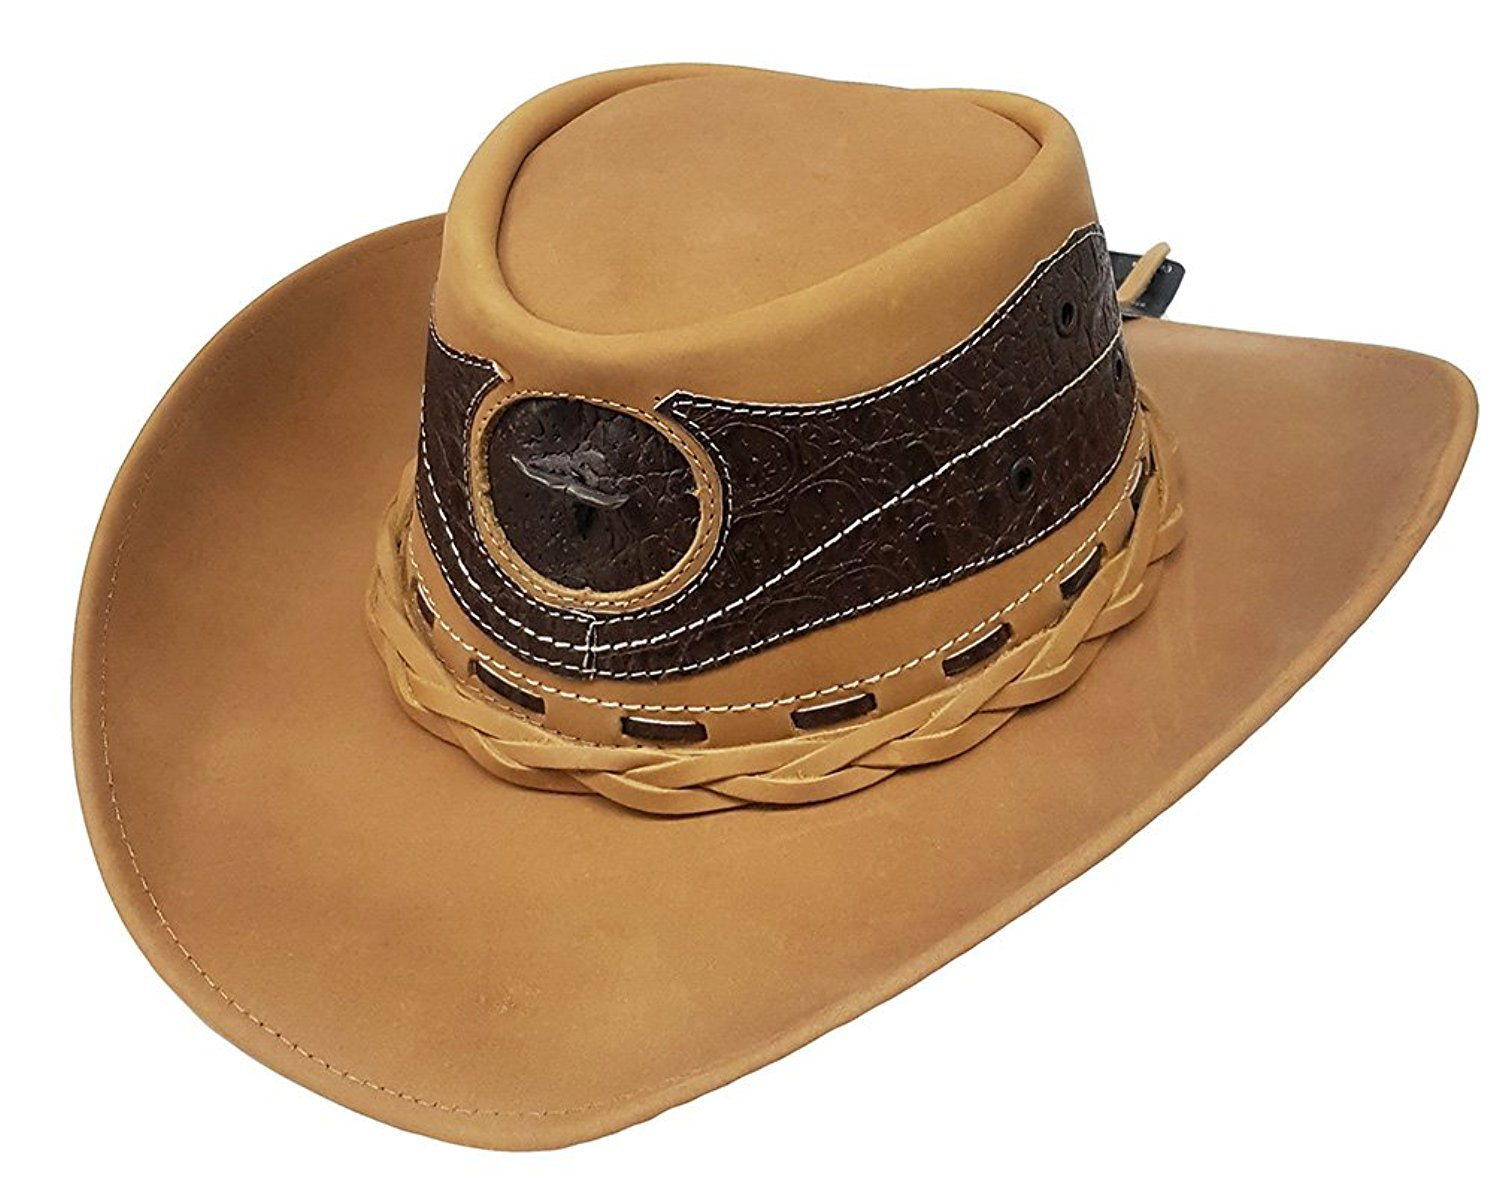 Get Quotations · Modestone Unisex Leather Cowboy Hat Leather Crocodile Skin  Pattern Applique Tan fe53418f6e2a